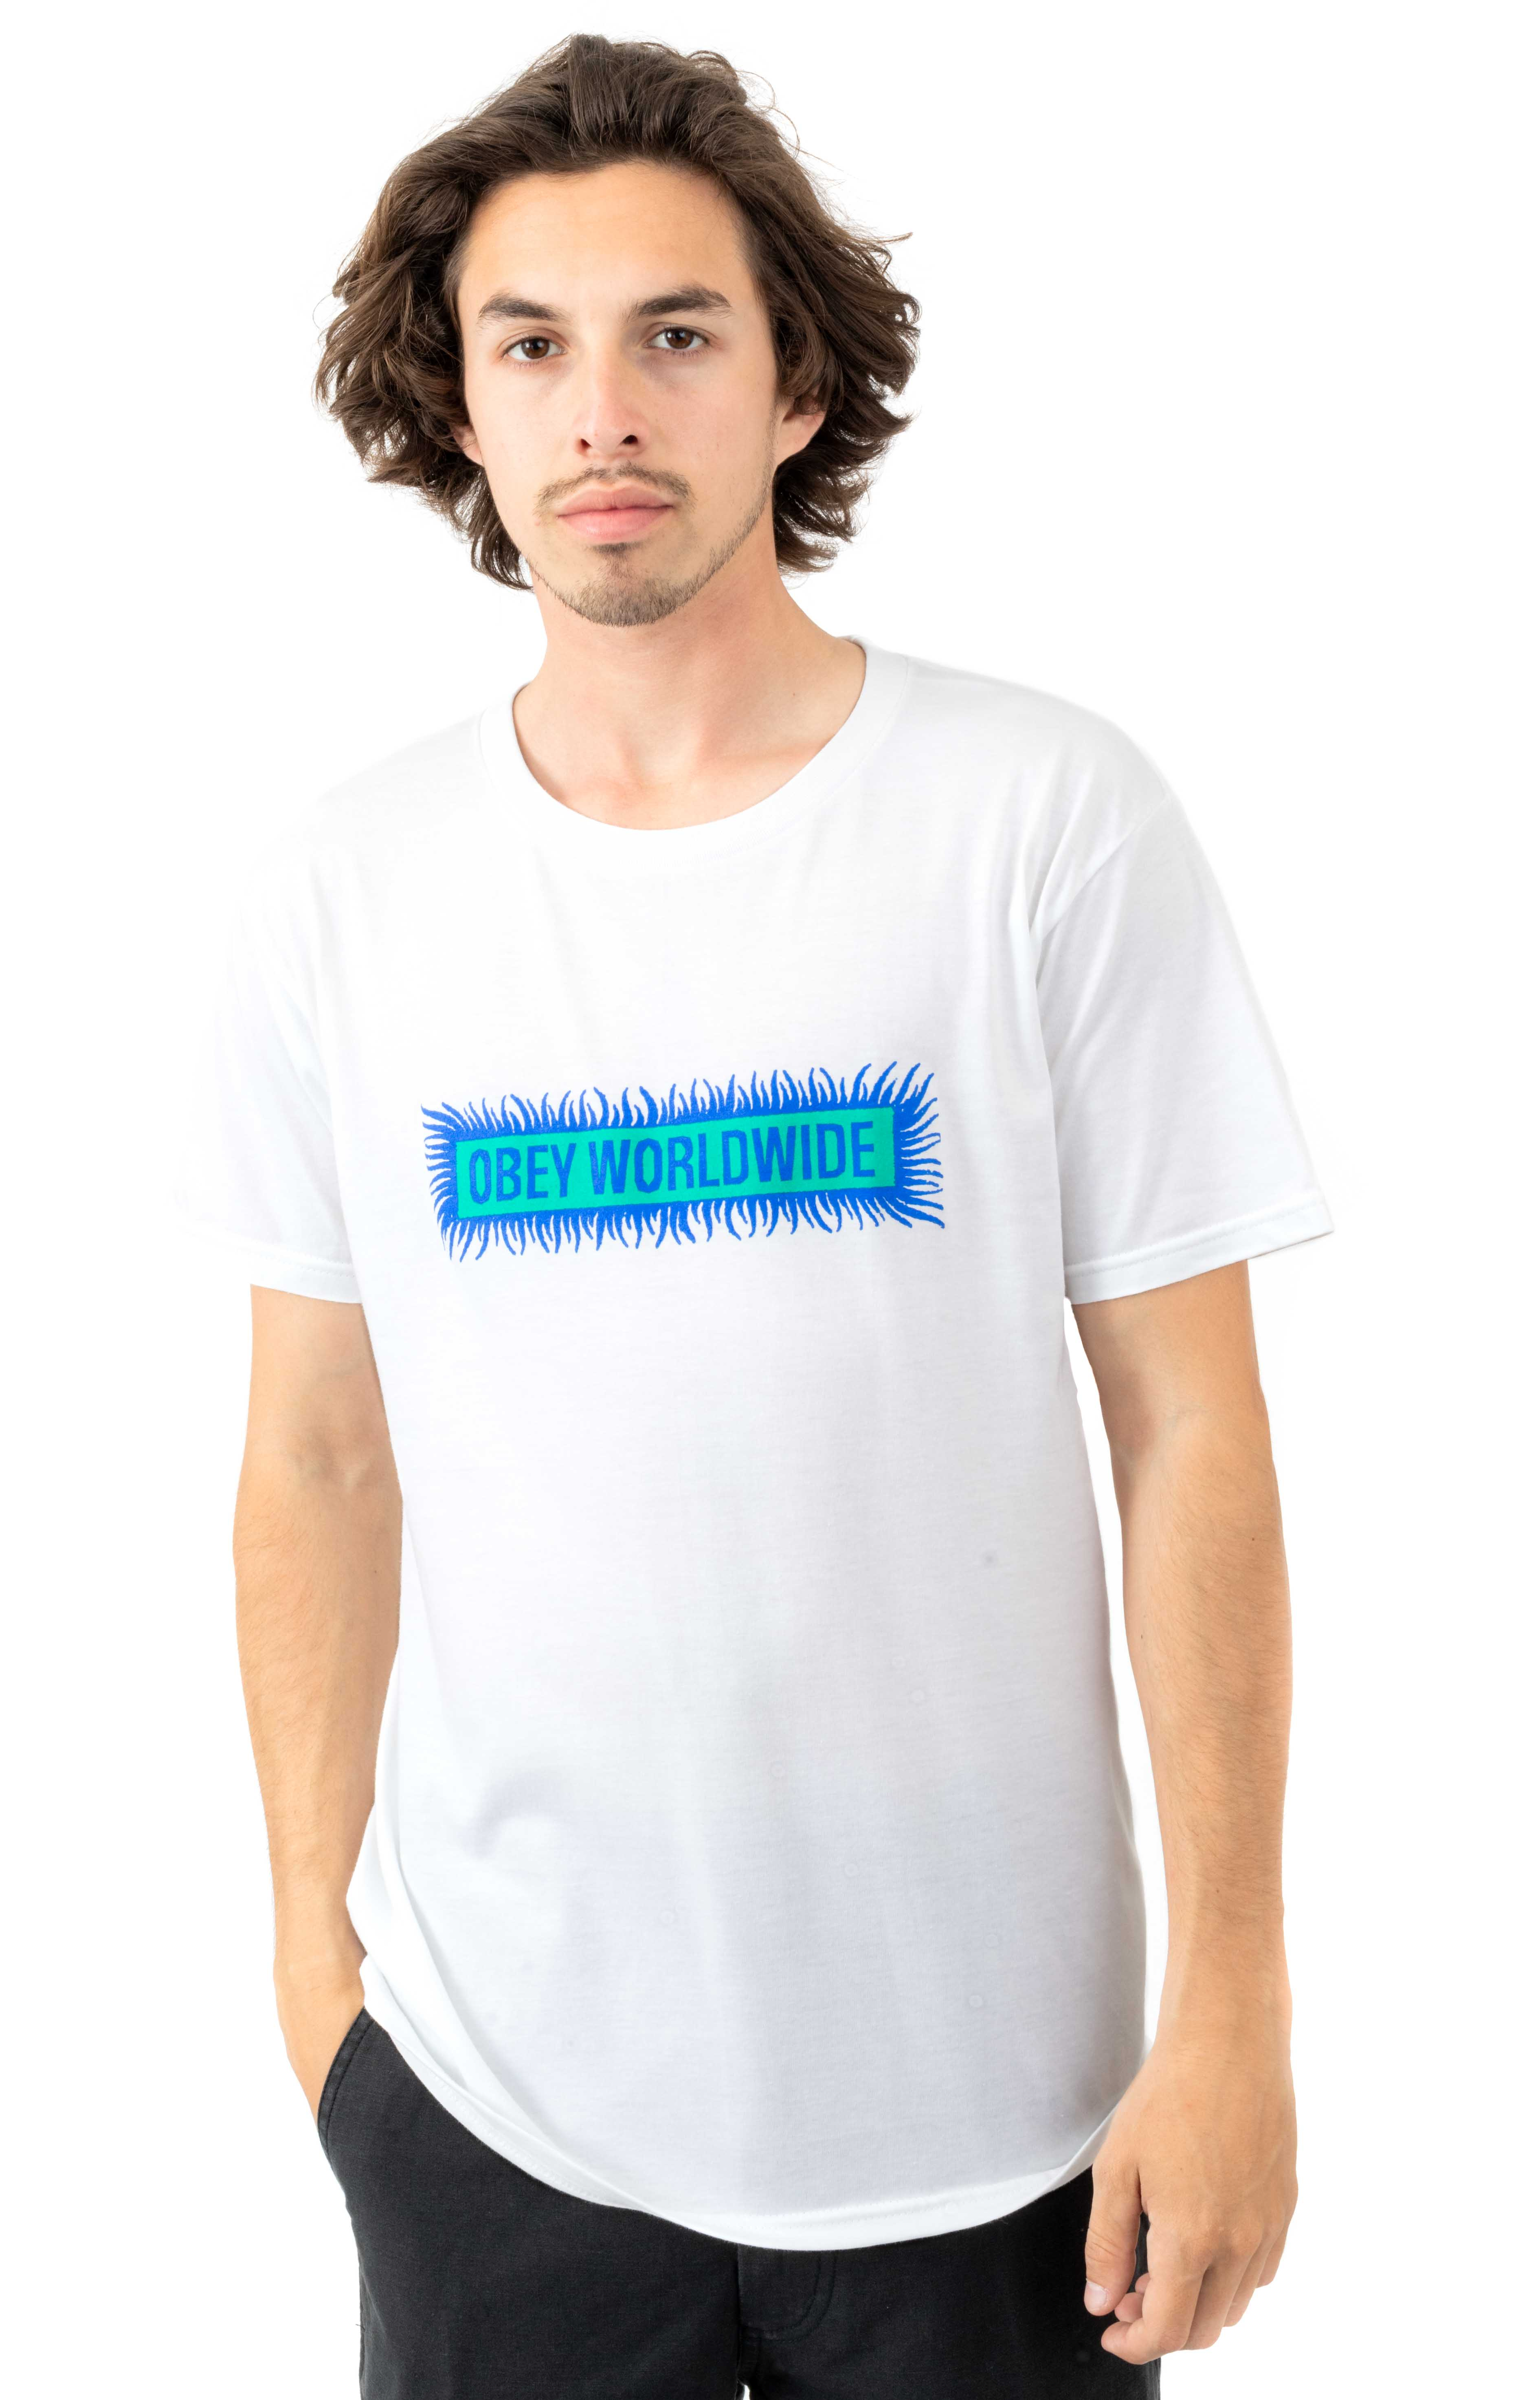 Worldwide Obey T-Shirt - White